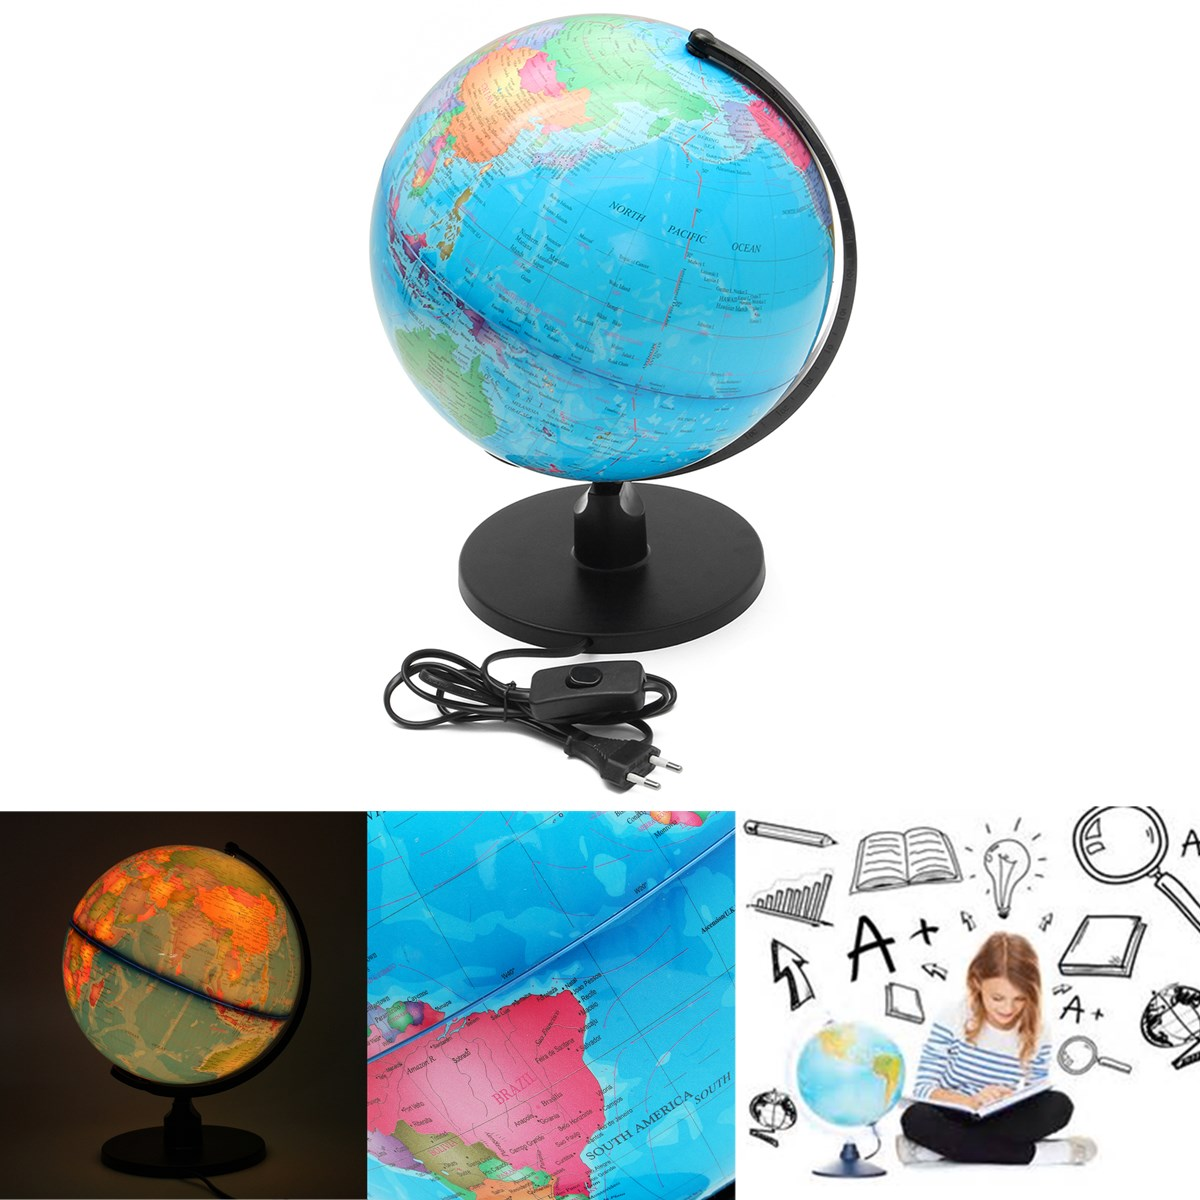 25CM LED Earth Globe World Map Geography Educational Toy For Desktop Decoration Home Office Aid Miniatures Kids Gift